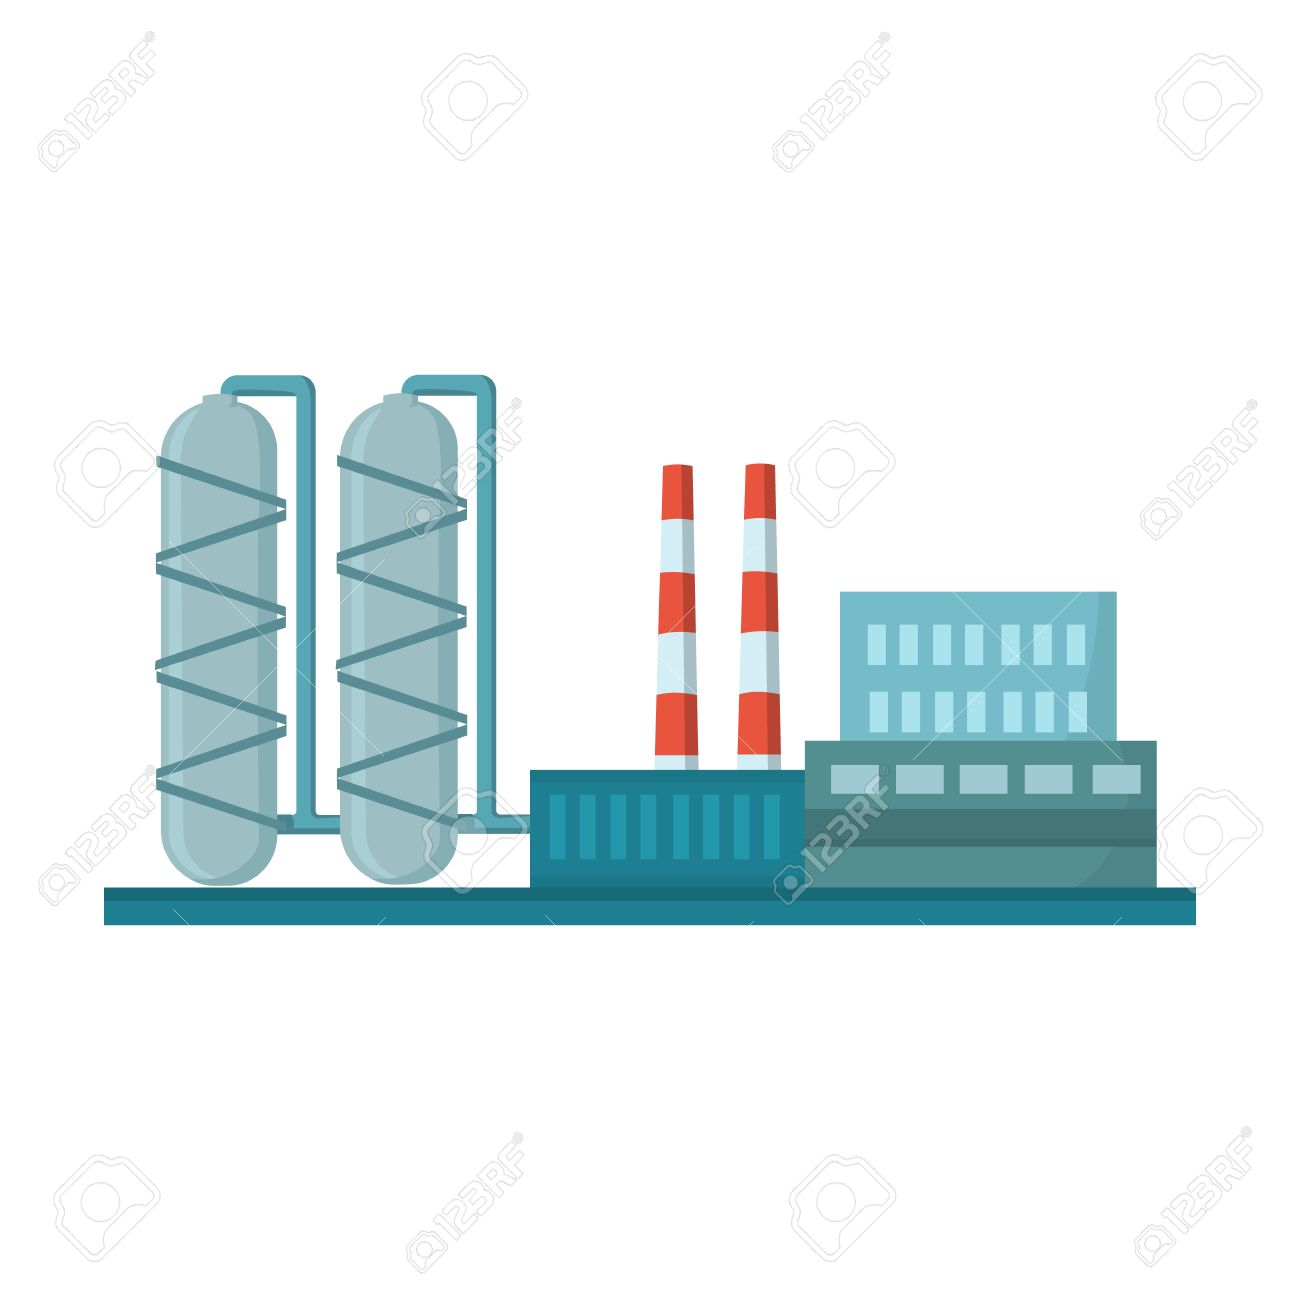 Oil refinery factory icon in cartoon style isolated on white background. Oil industry symbol vector illustration. - 69073362